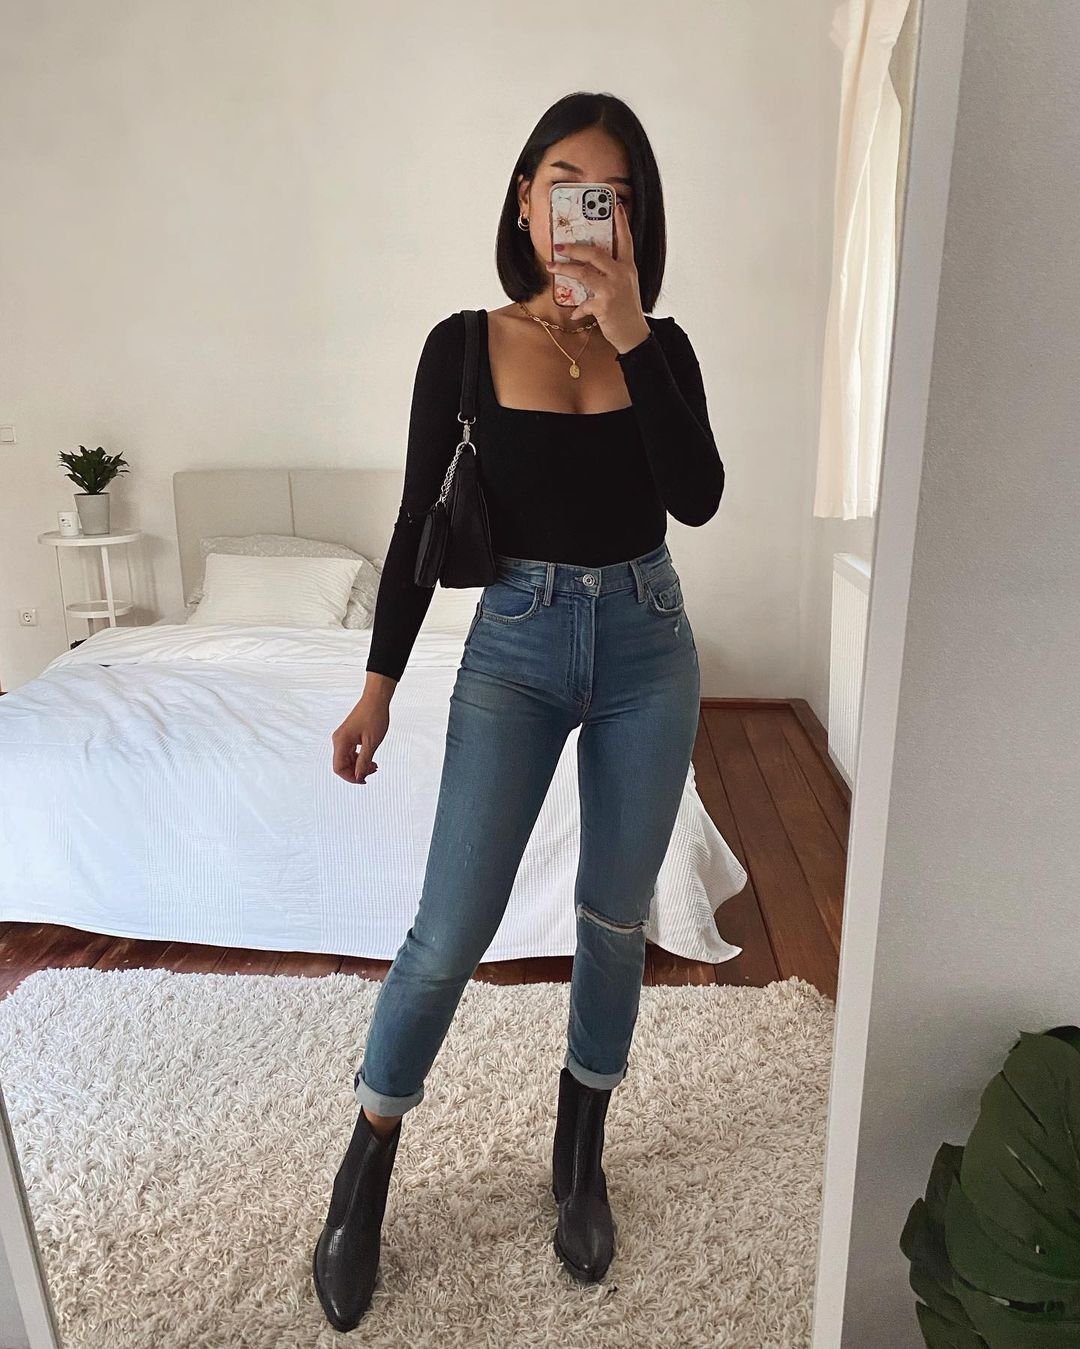 """Thanya W. on Instagram: """"Would you wear this outfit? YES or NO? 🖤 Anzeige : Bodysuit & Jeans from @revolve #revolveu"""""""